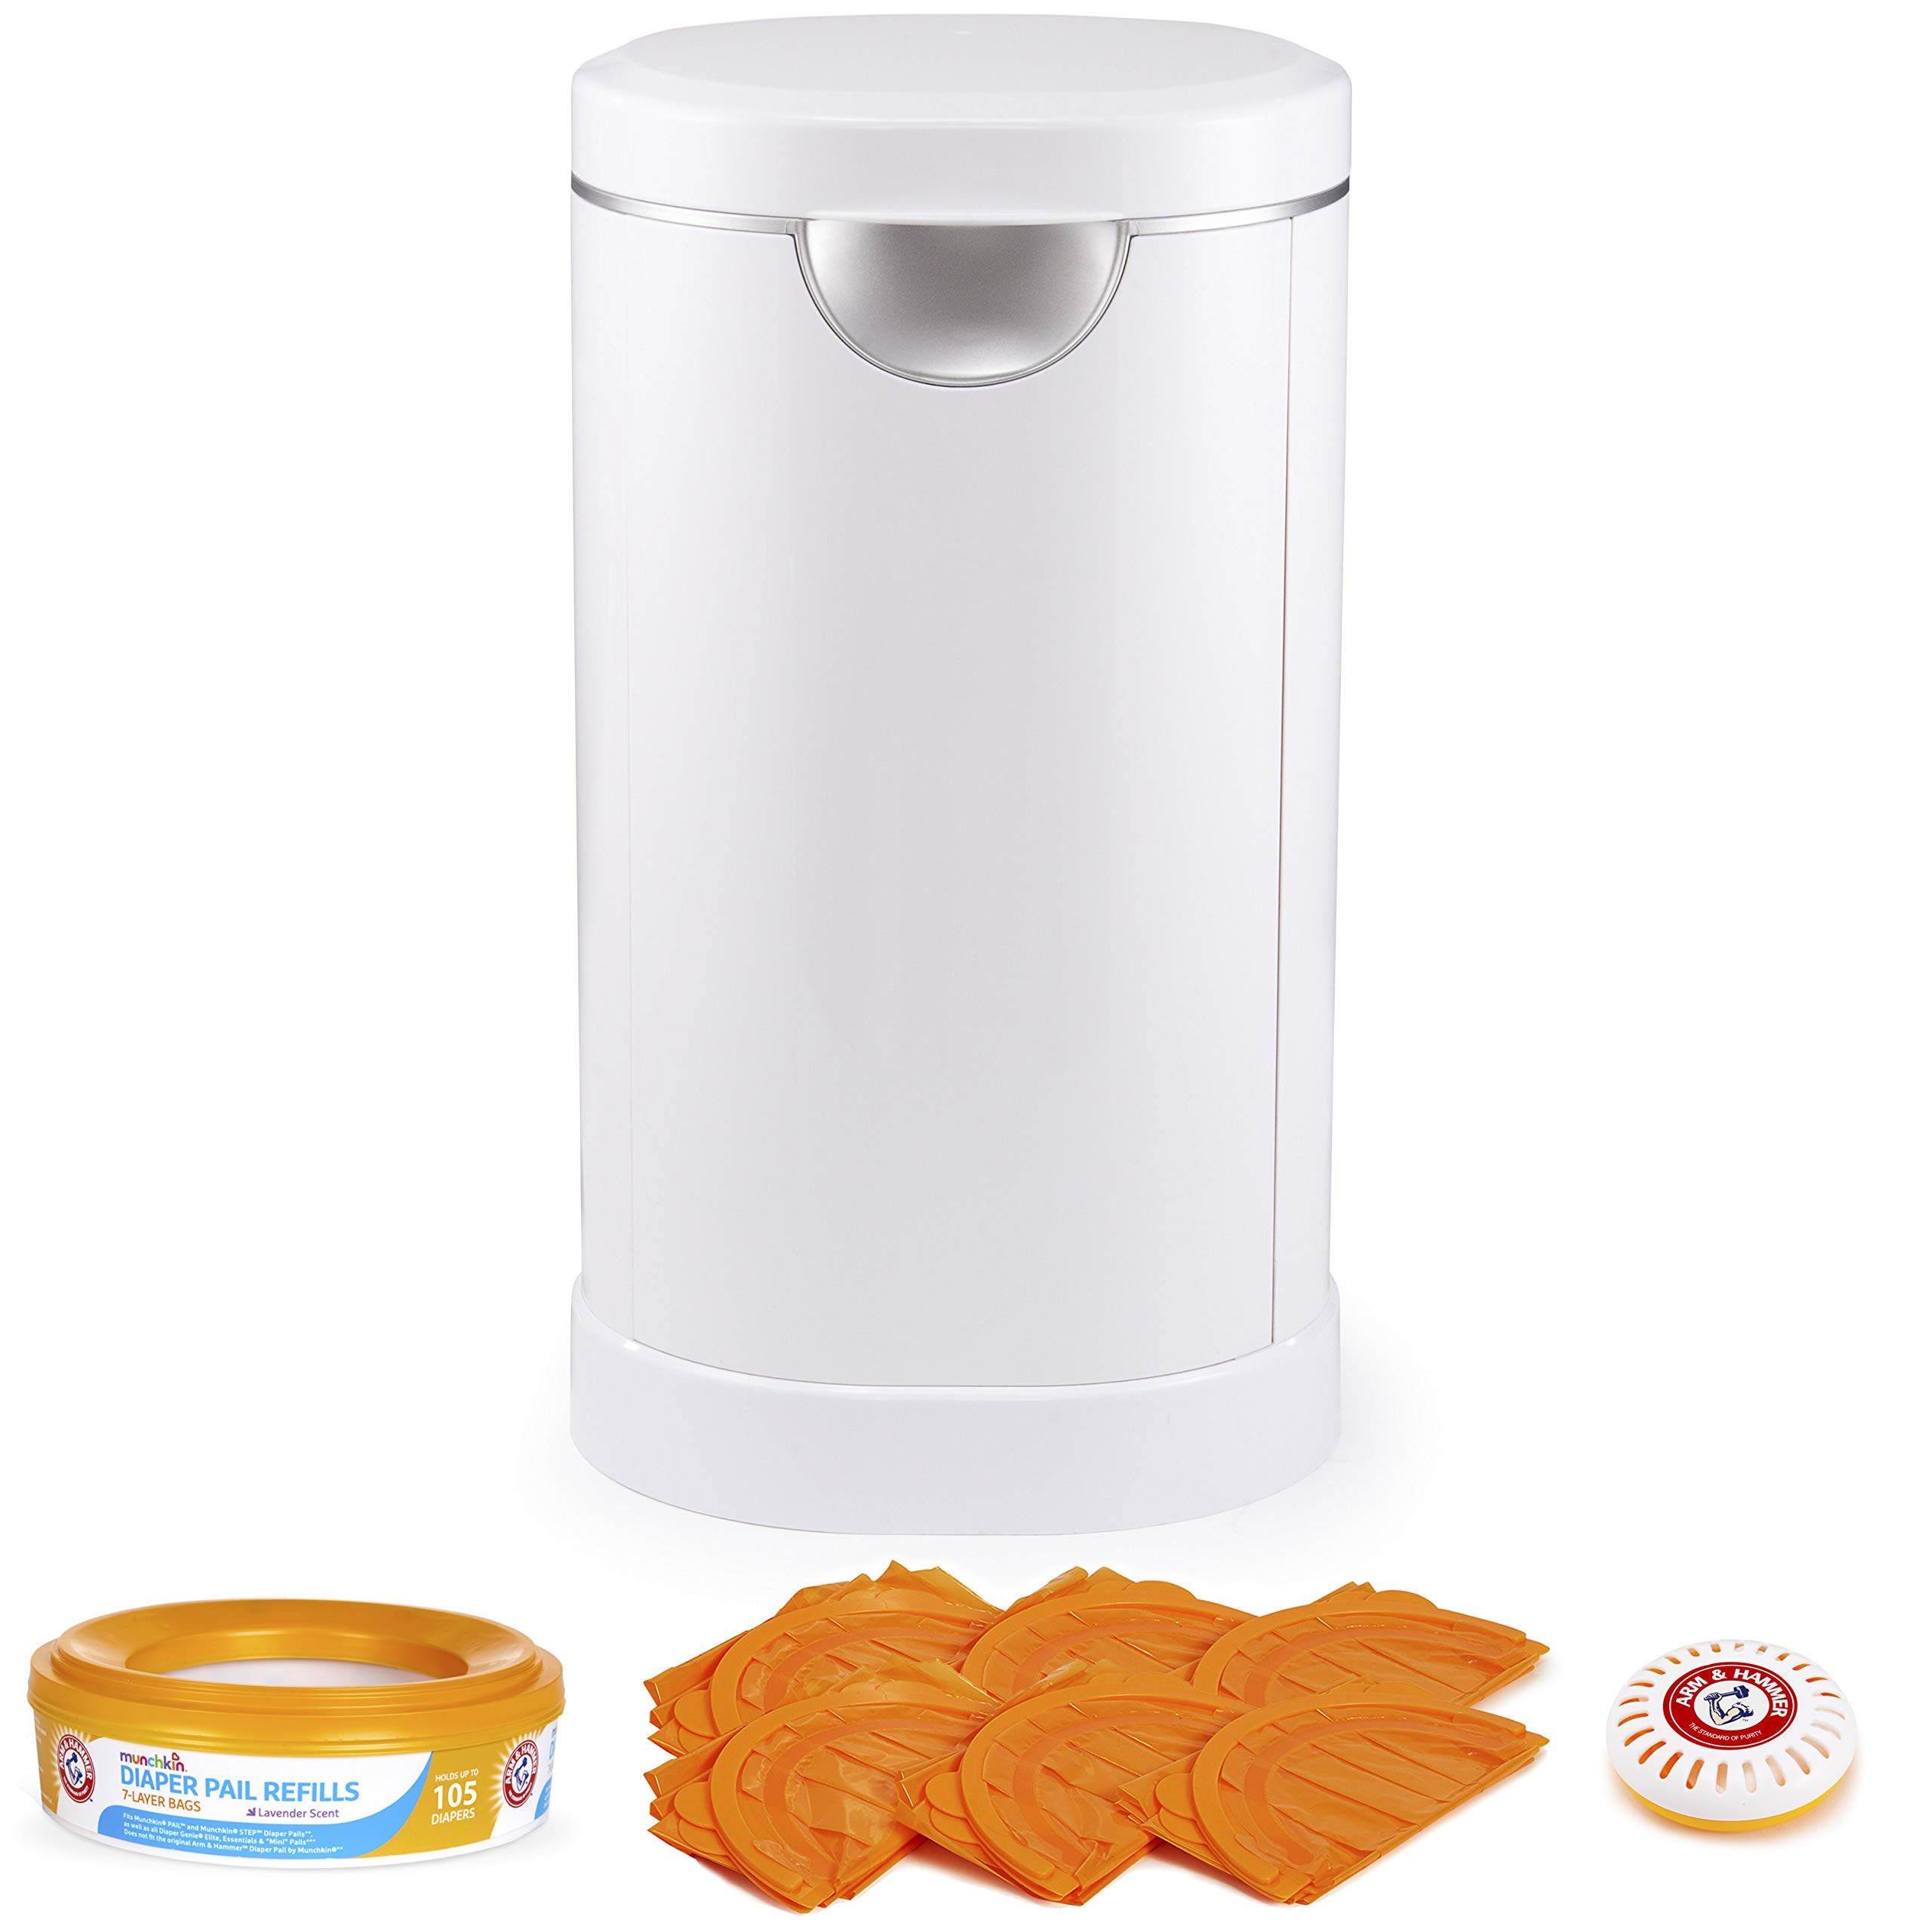 Munchkin Diaper Pail Baby Registry Starter Set, Powered by Arm and Hammer, Includes 1 Month Refill Supply and Baking…